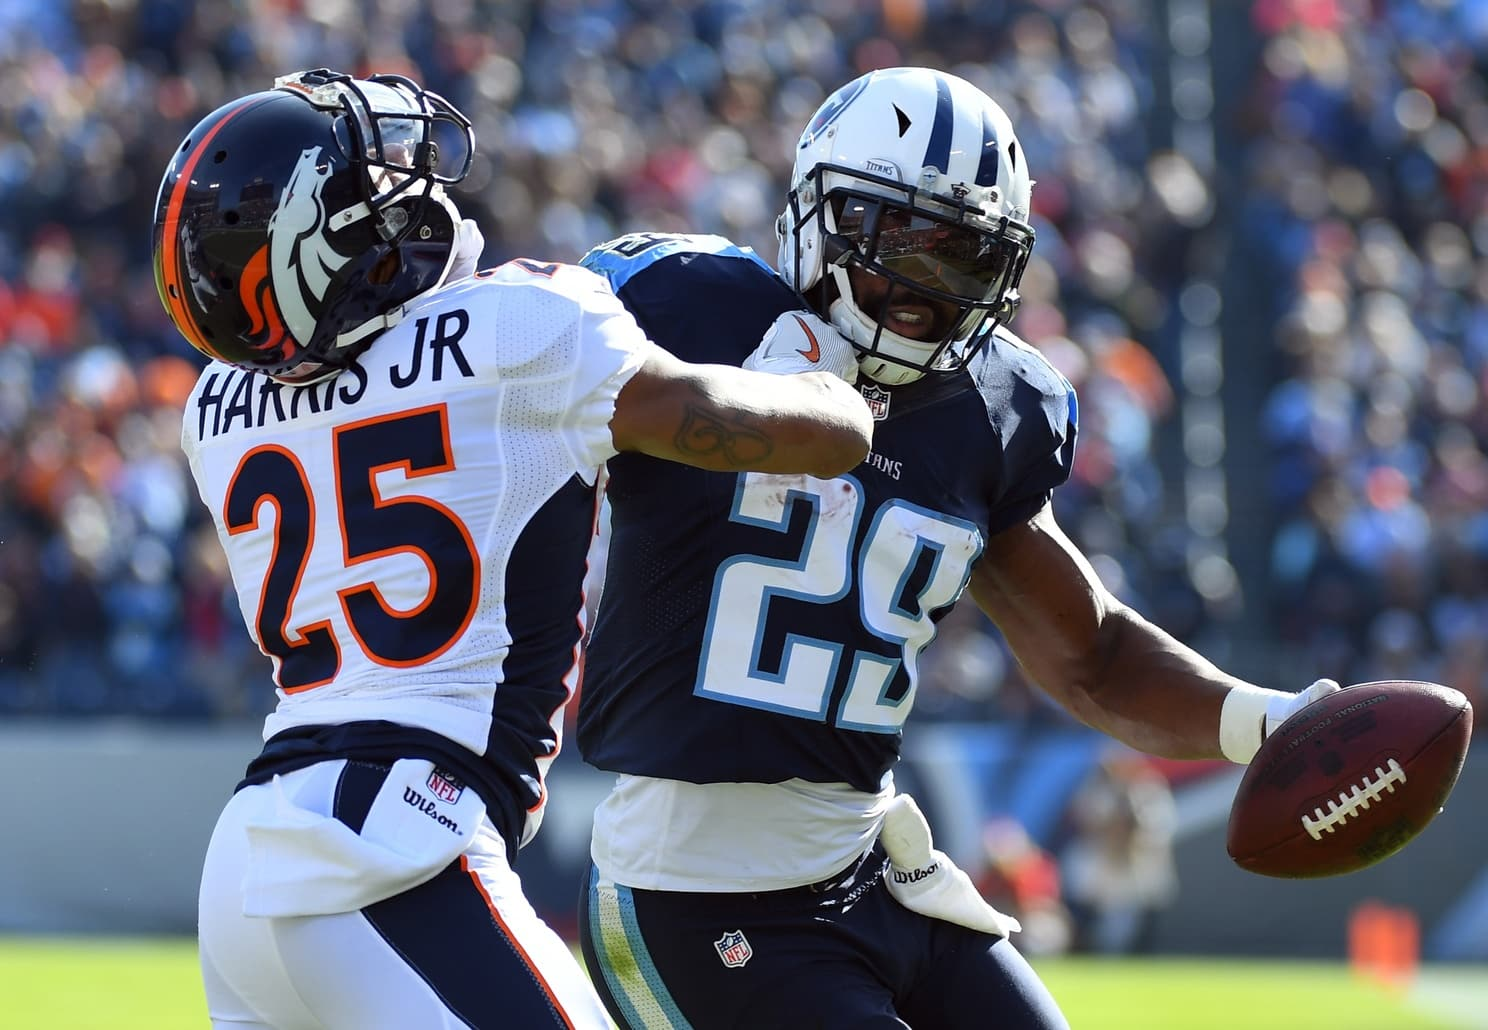 NFL Week 15, DeMarco Murray